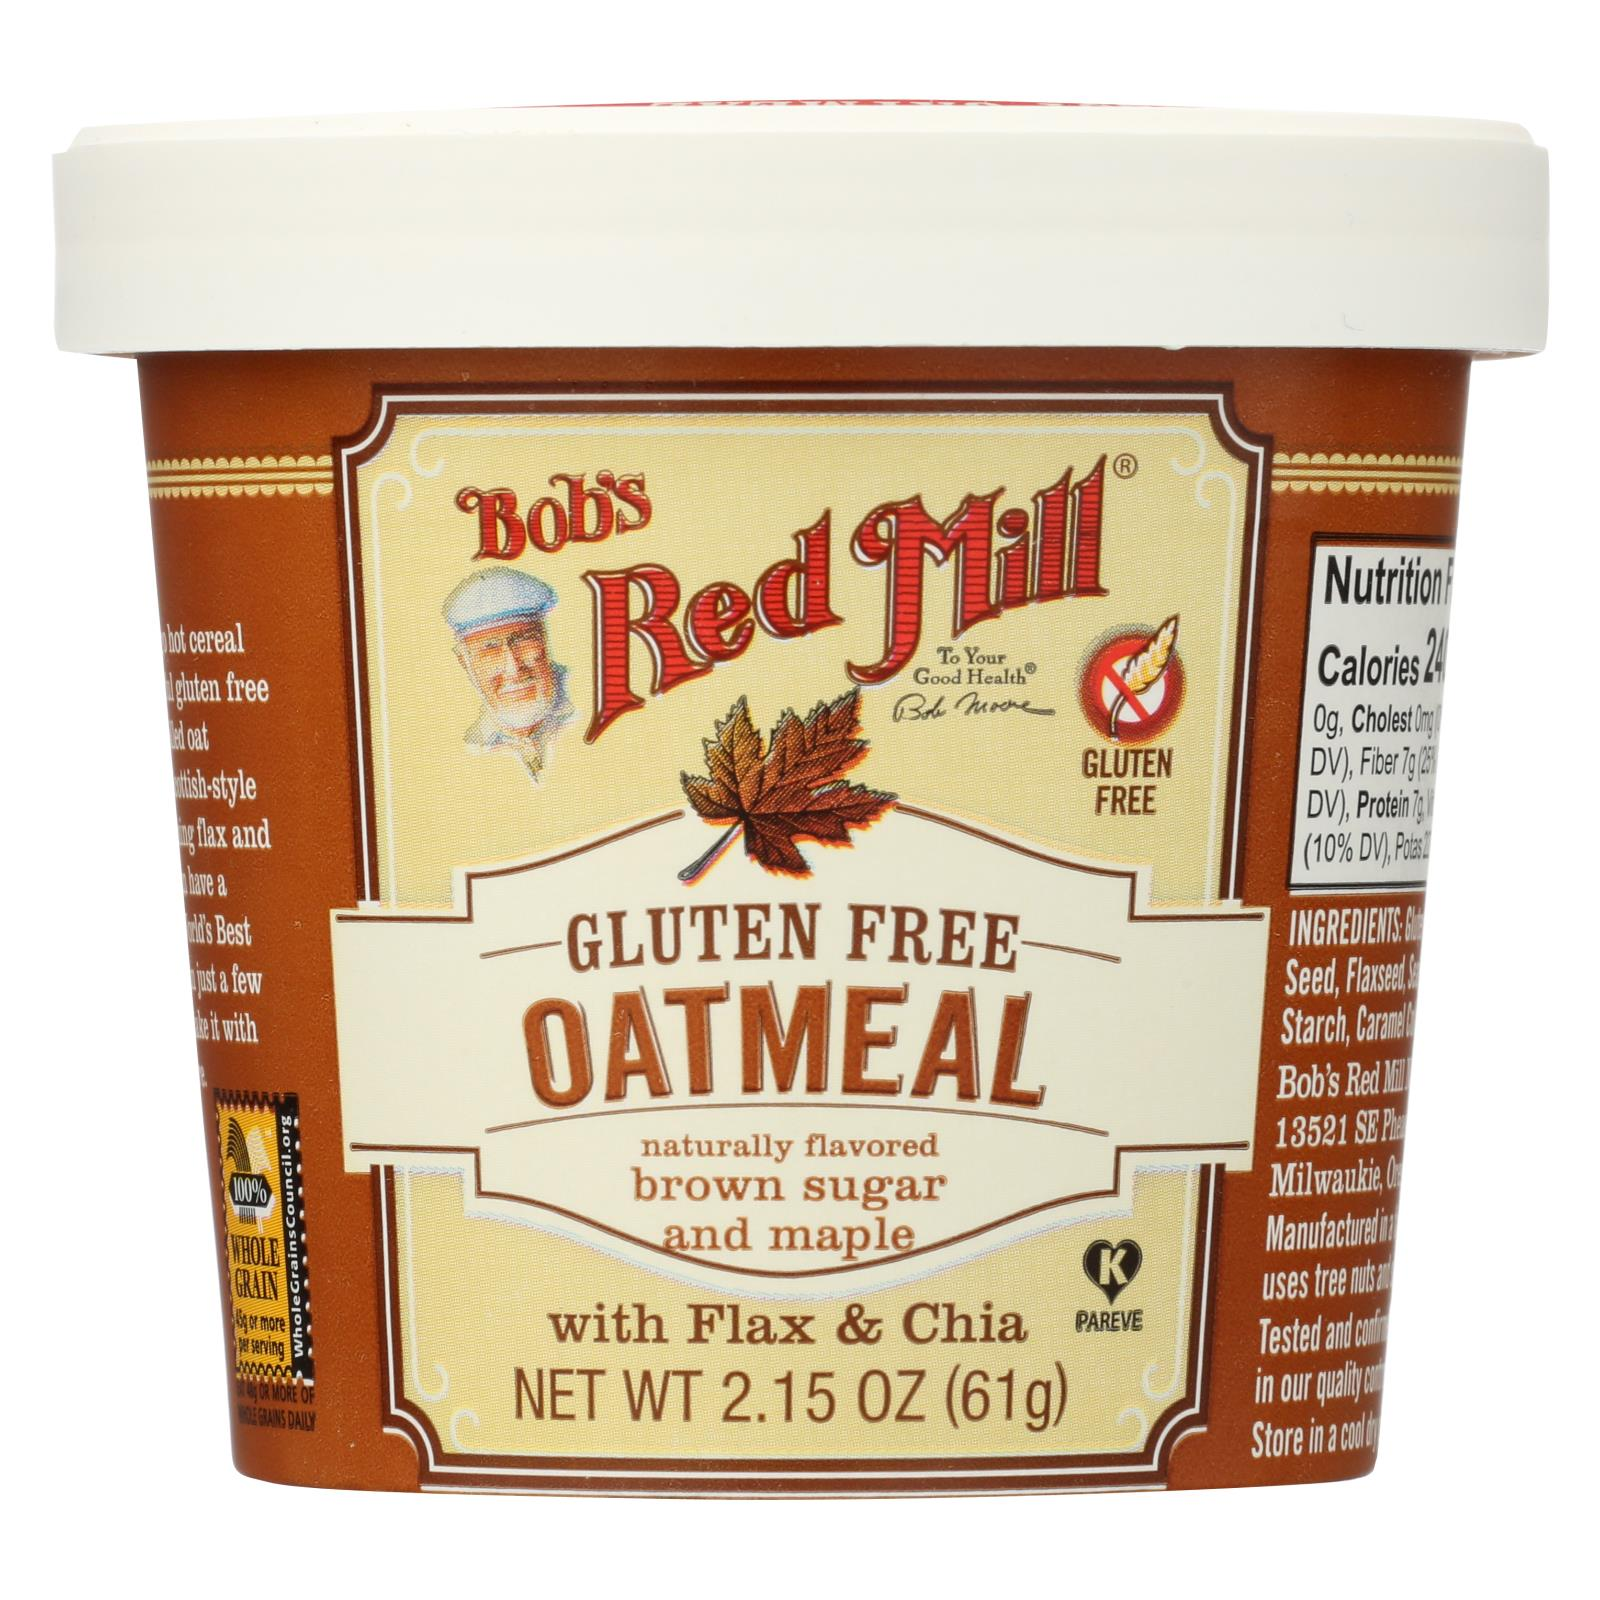 Bob's Red Mill Gluten Free Oatmeal Cup, Brown Sugar And Maple - 2.15 Oz - Case Of 12 HG1770635